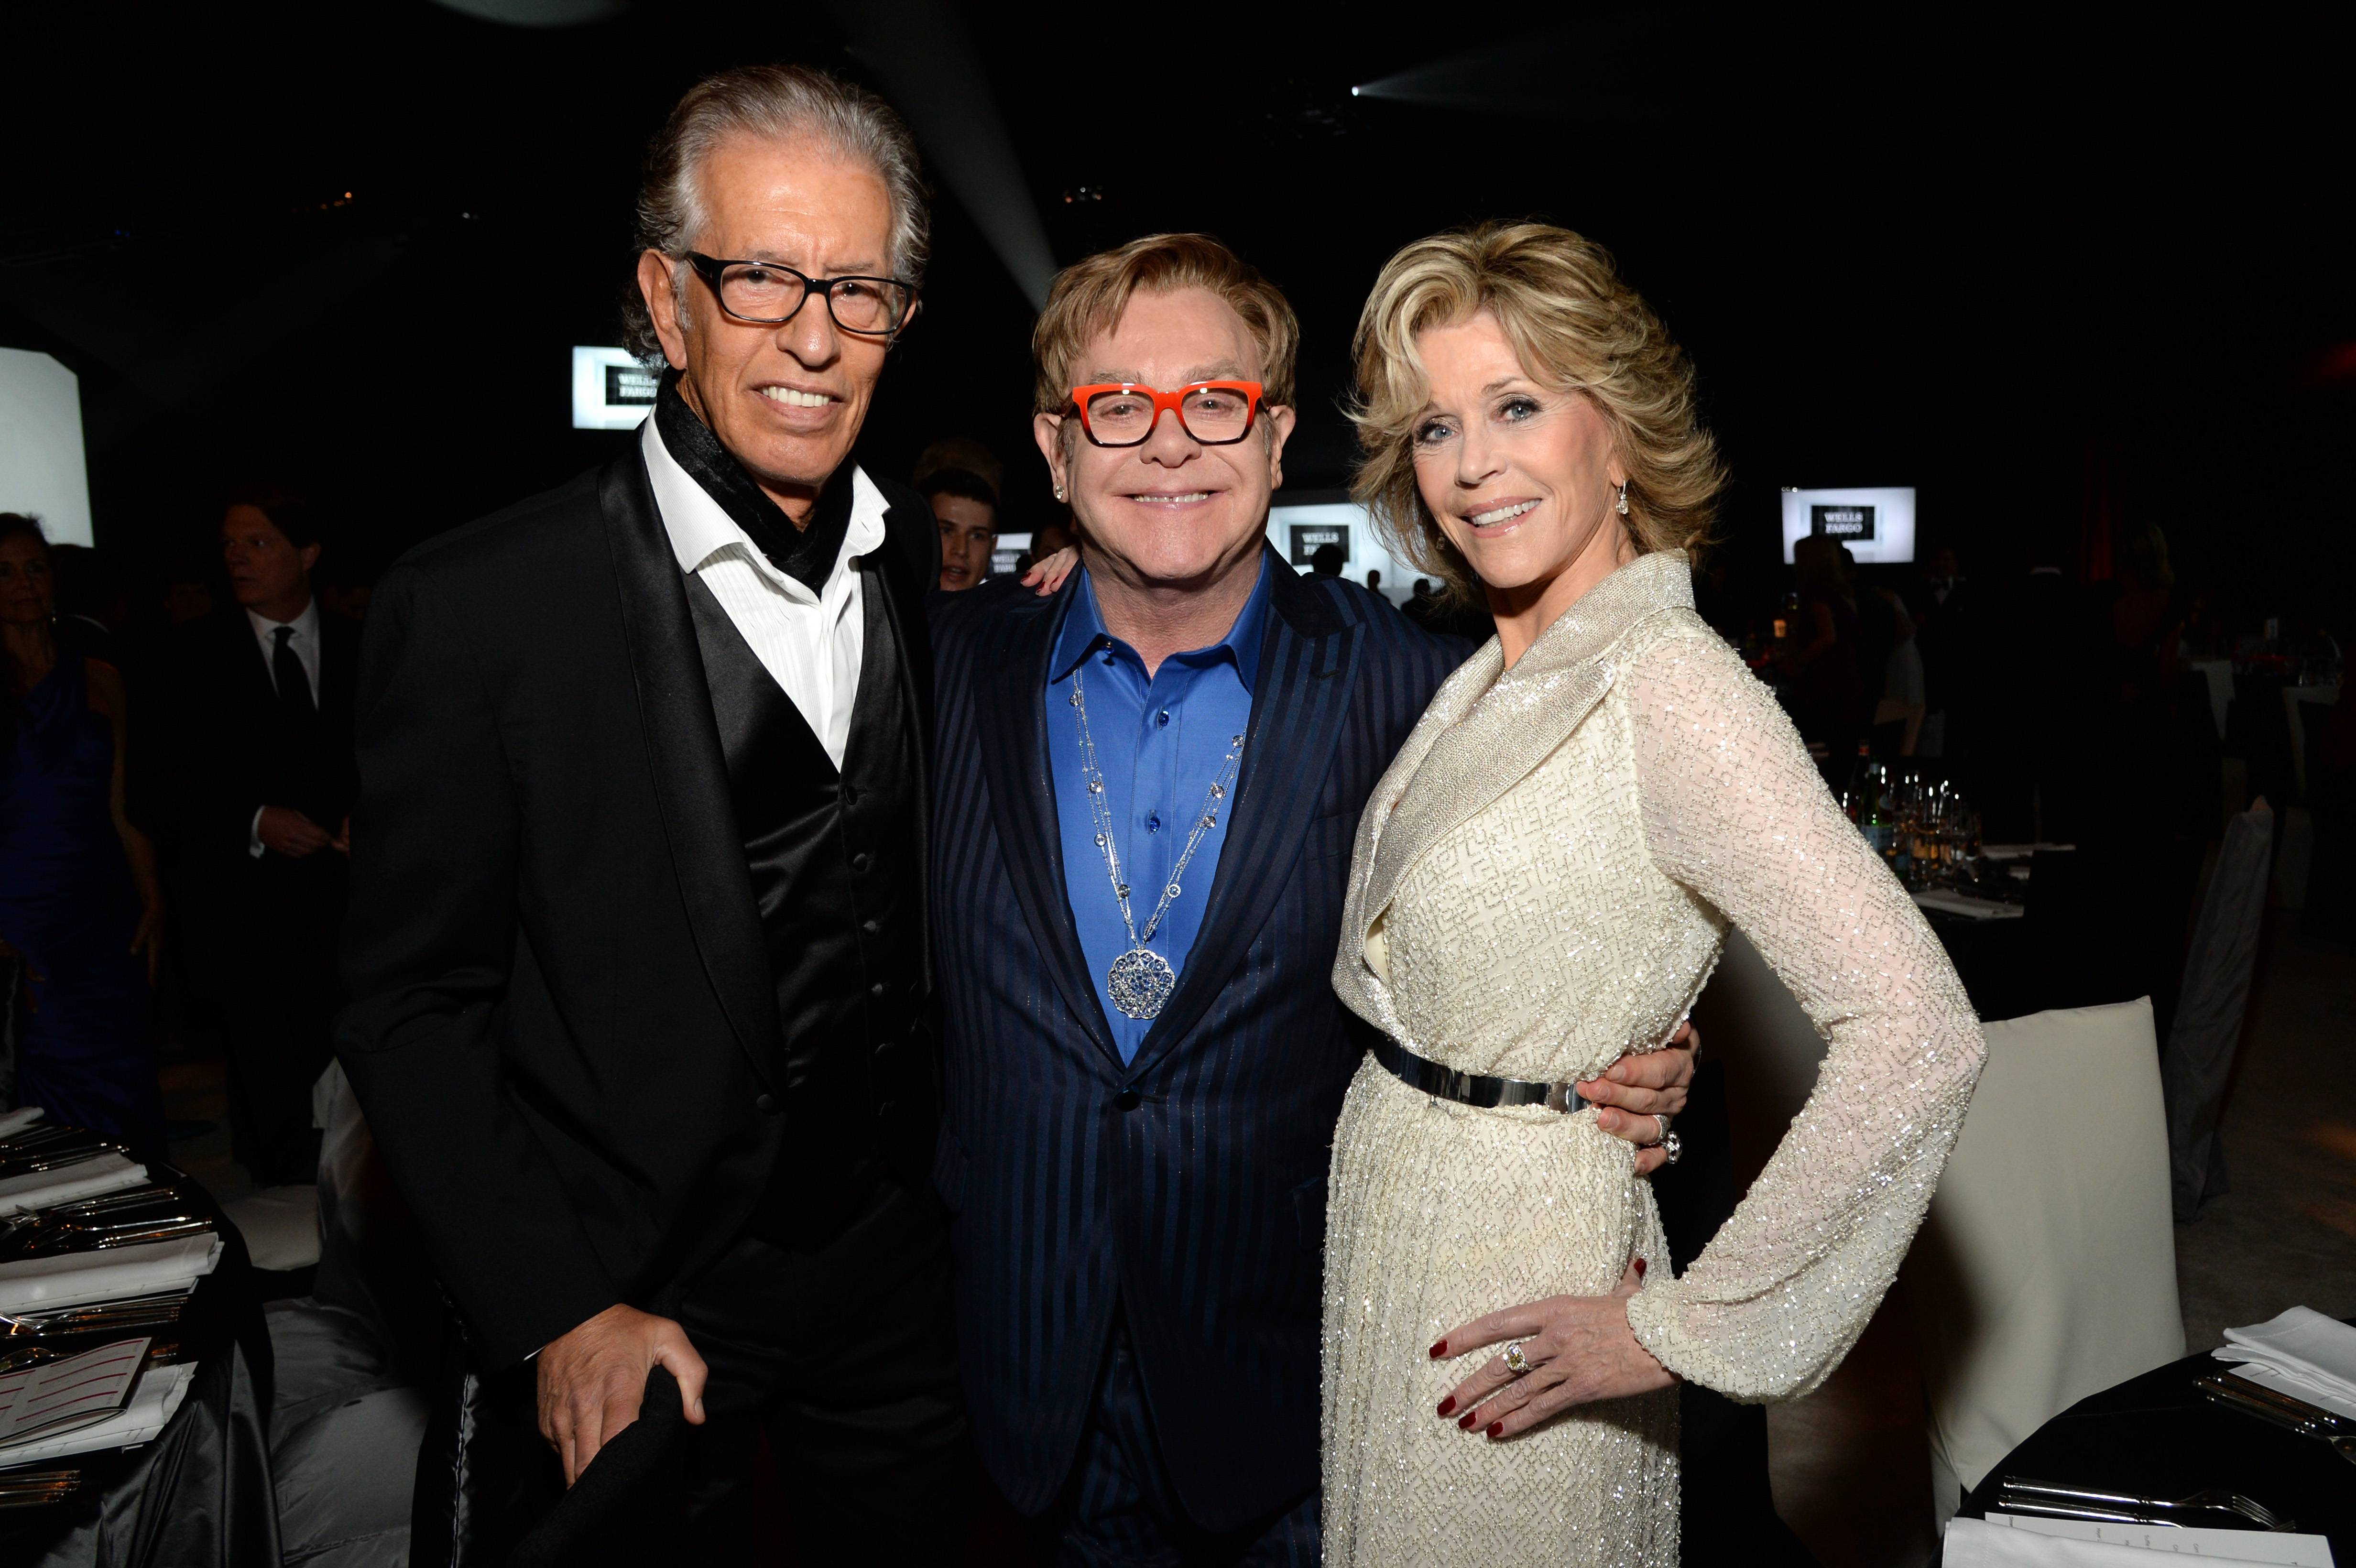 22nd Annual Elton John AIDS Foundation Academy Awards Viewing Party - Inside